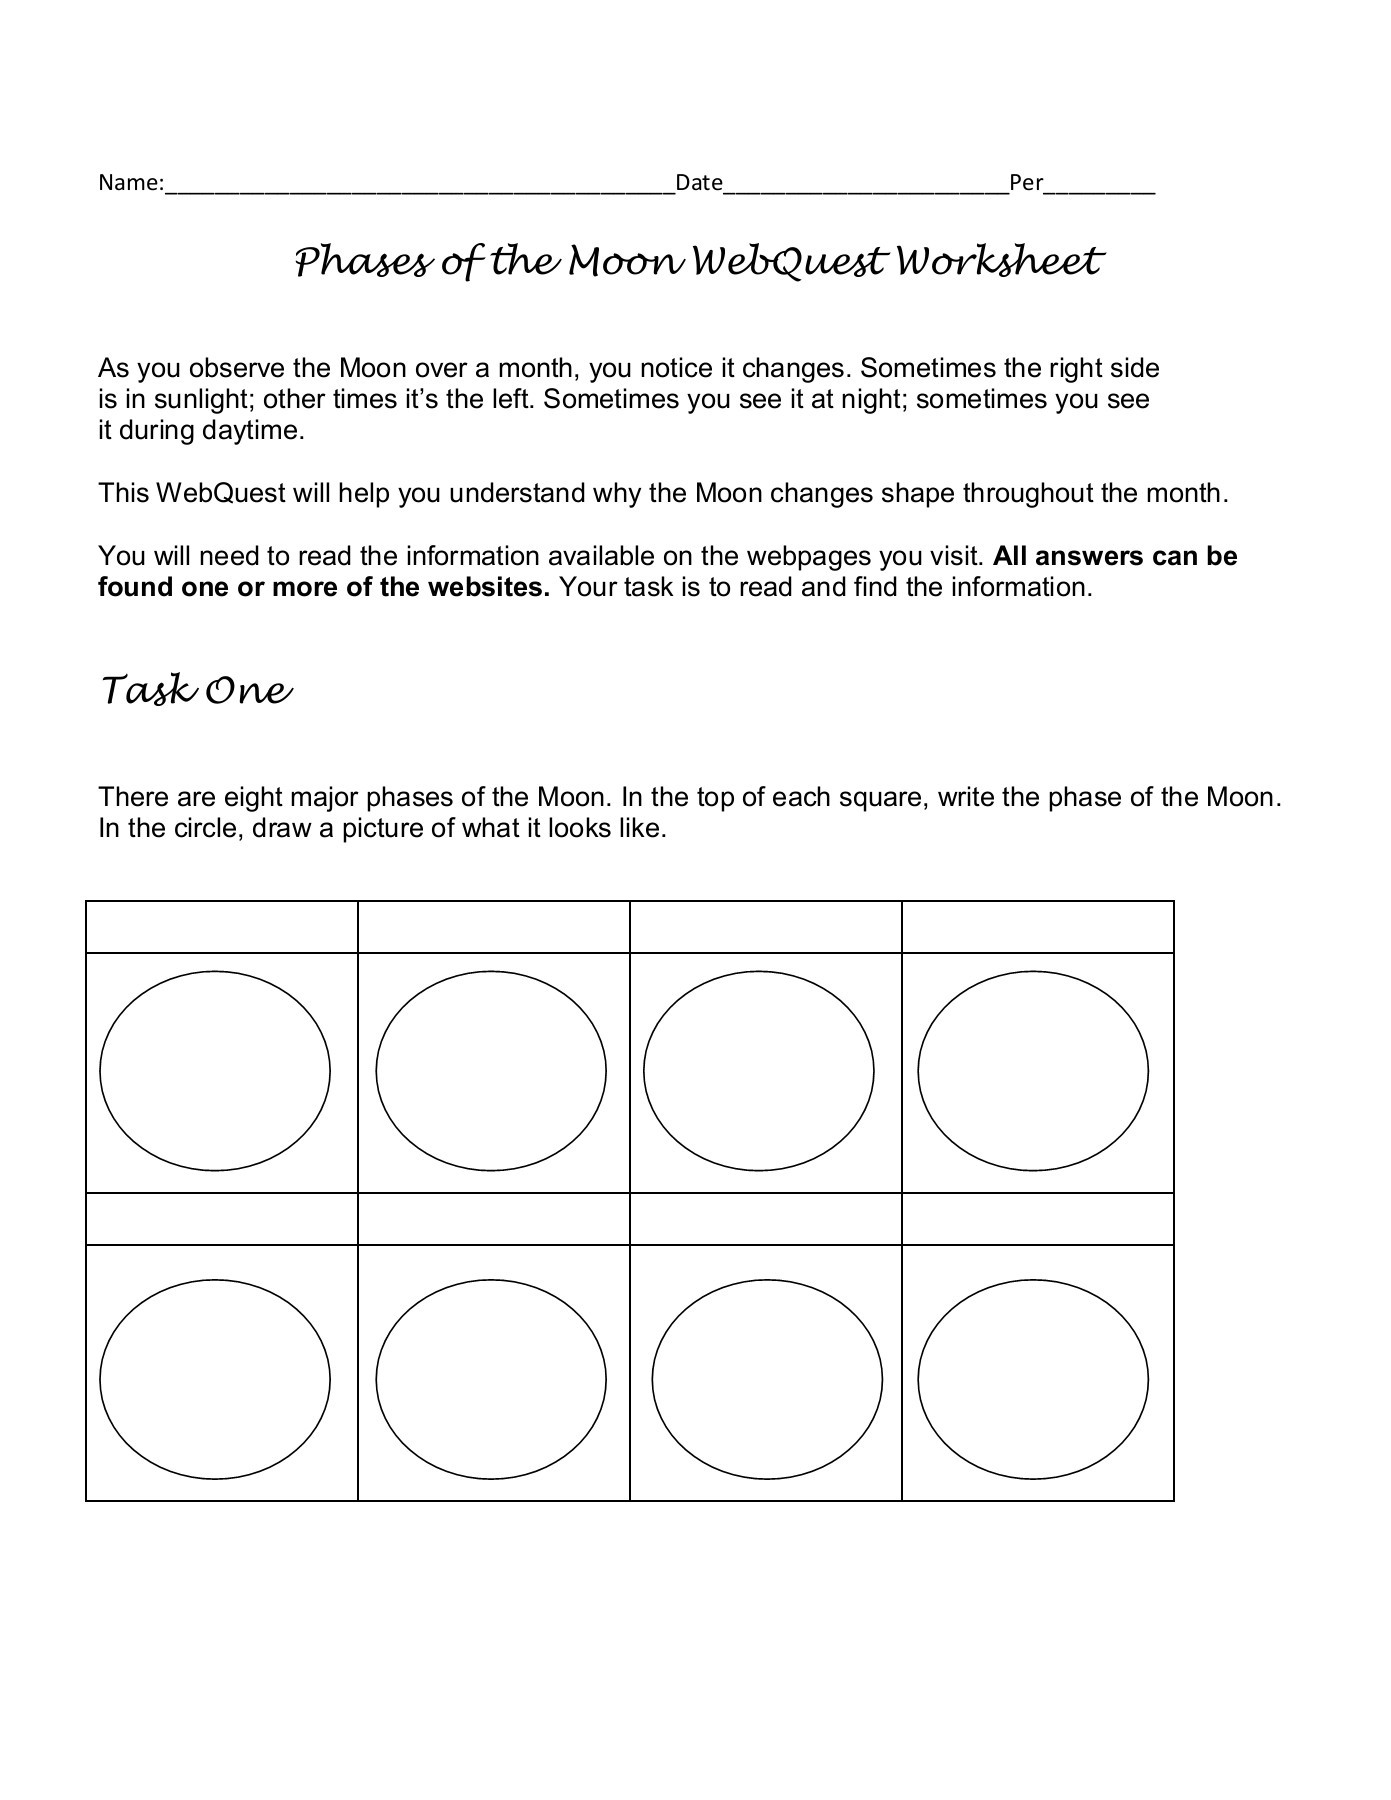 Moon Phases Worksheet Answers Phases Of the Moon Webquest Worksheet Cusd80 Pages 1